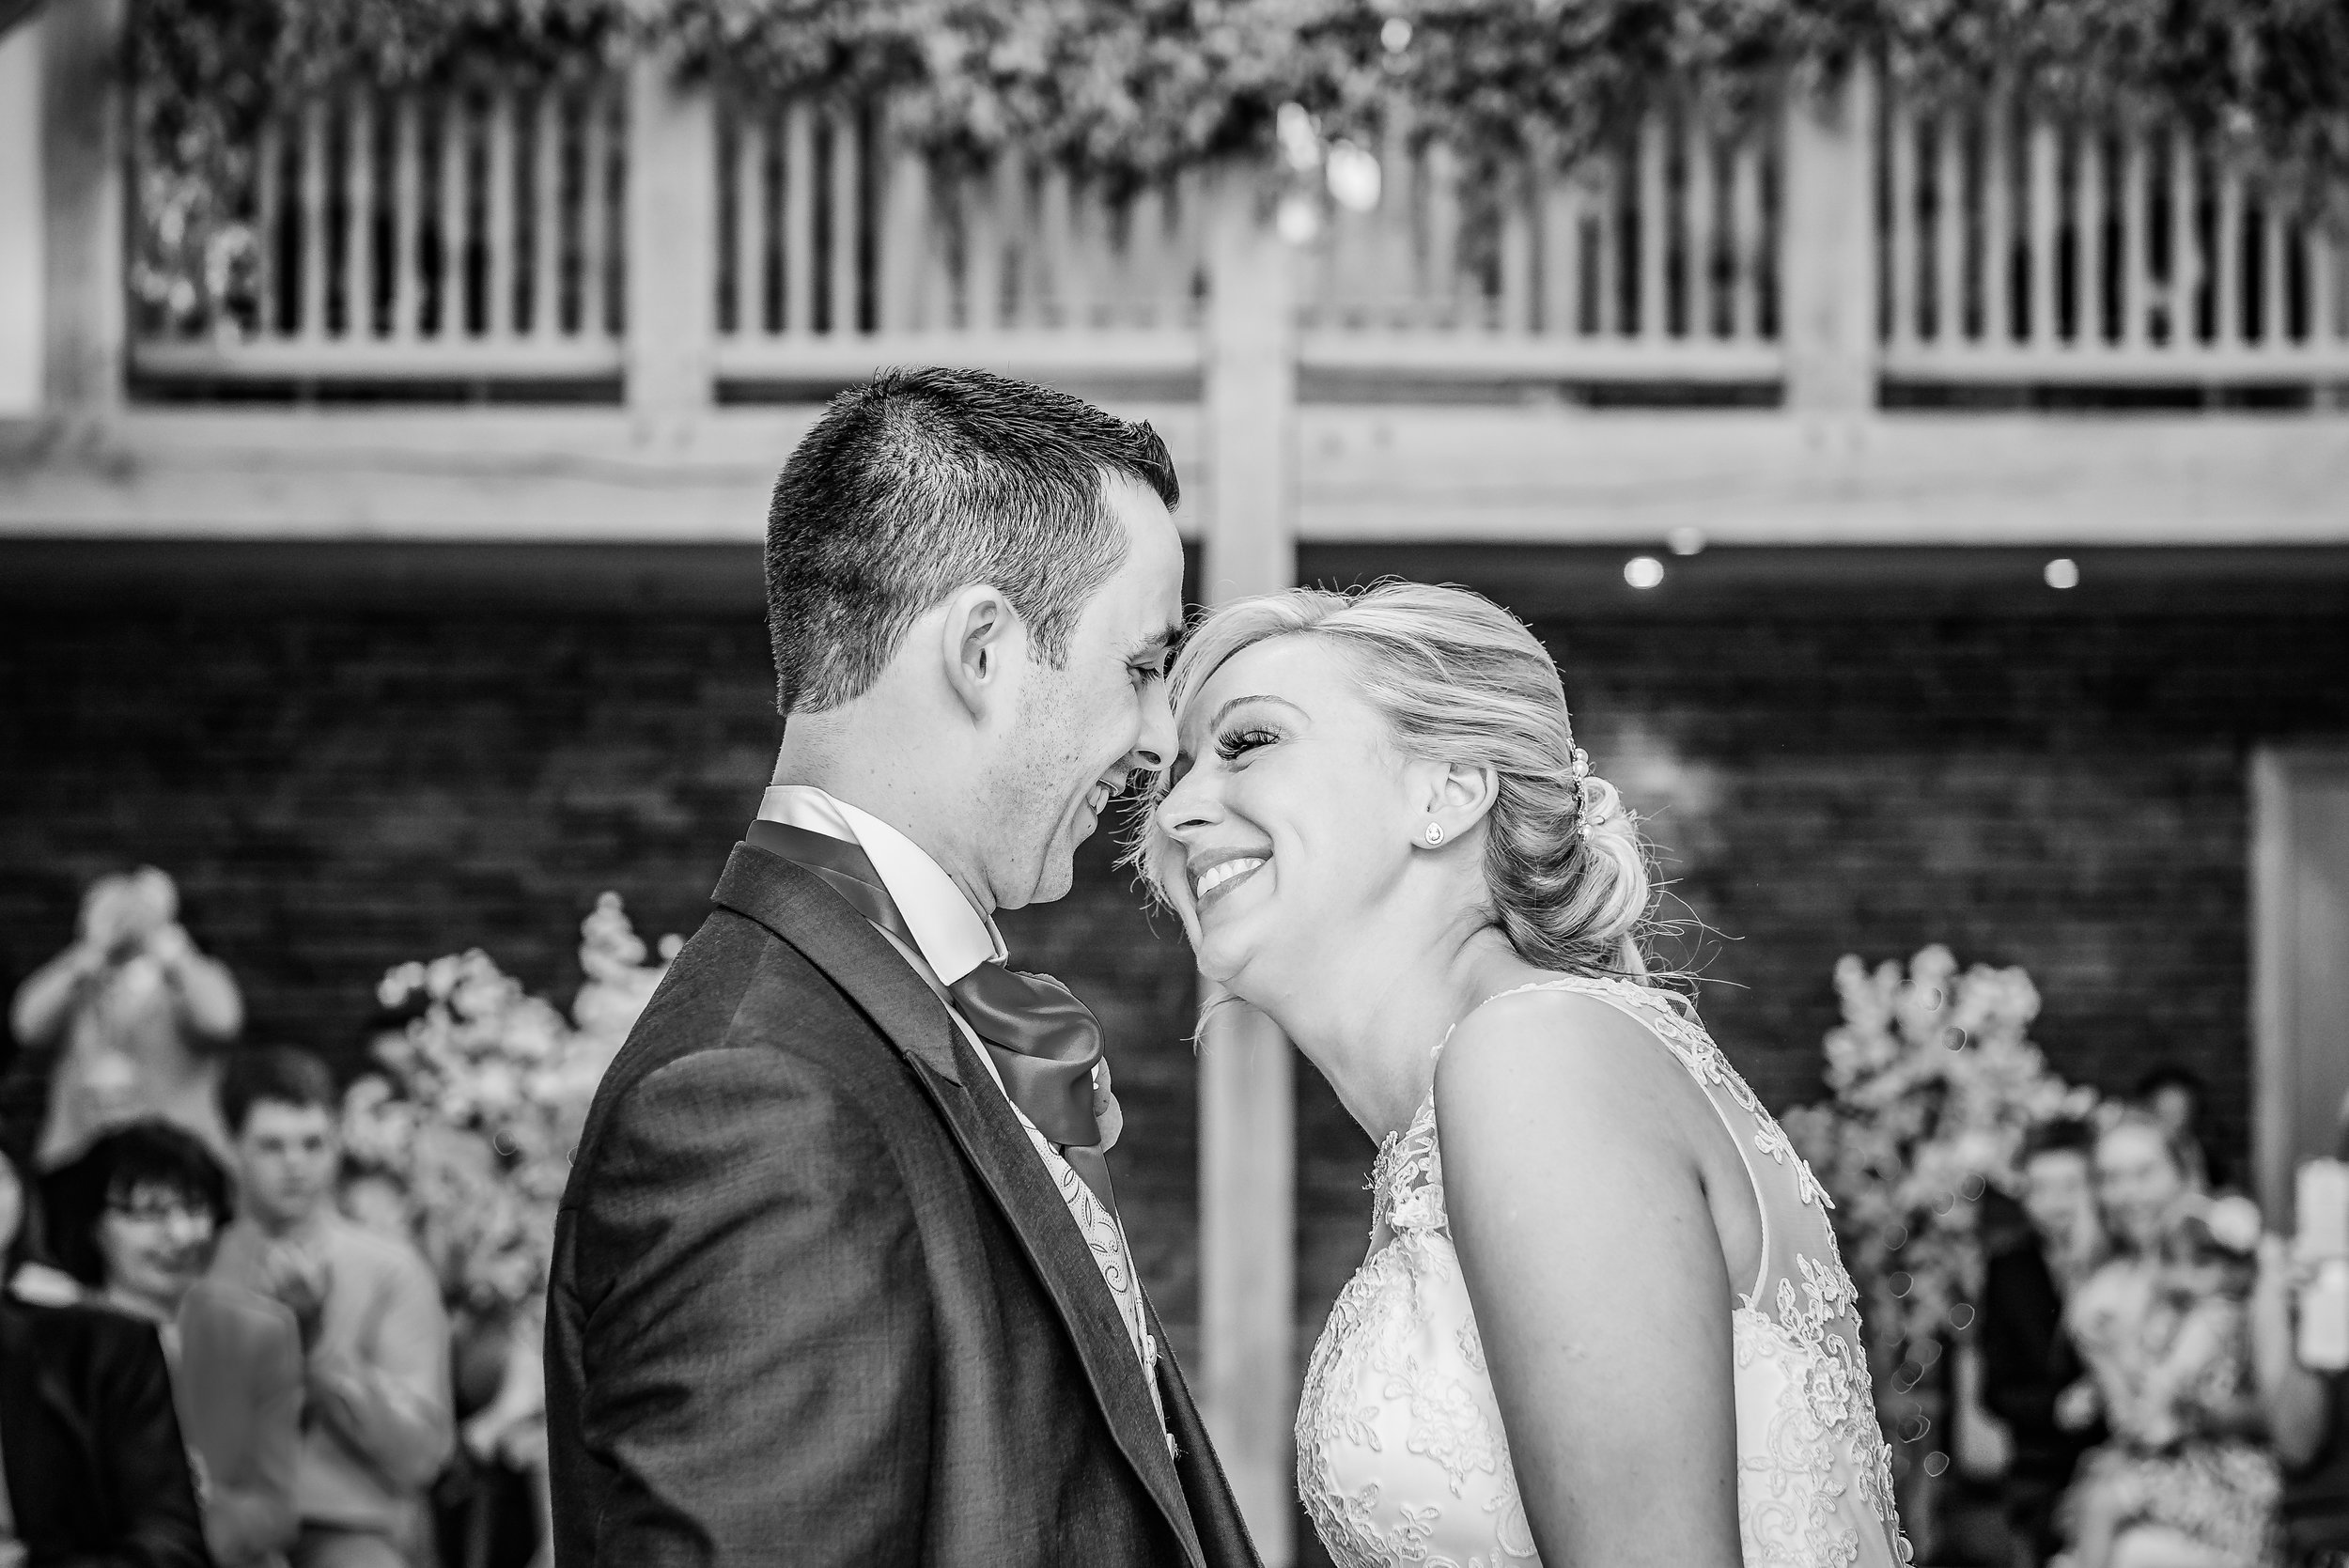 black and white wedding photography gorgeous moment between husband and wife